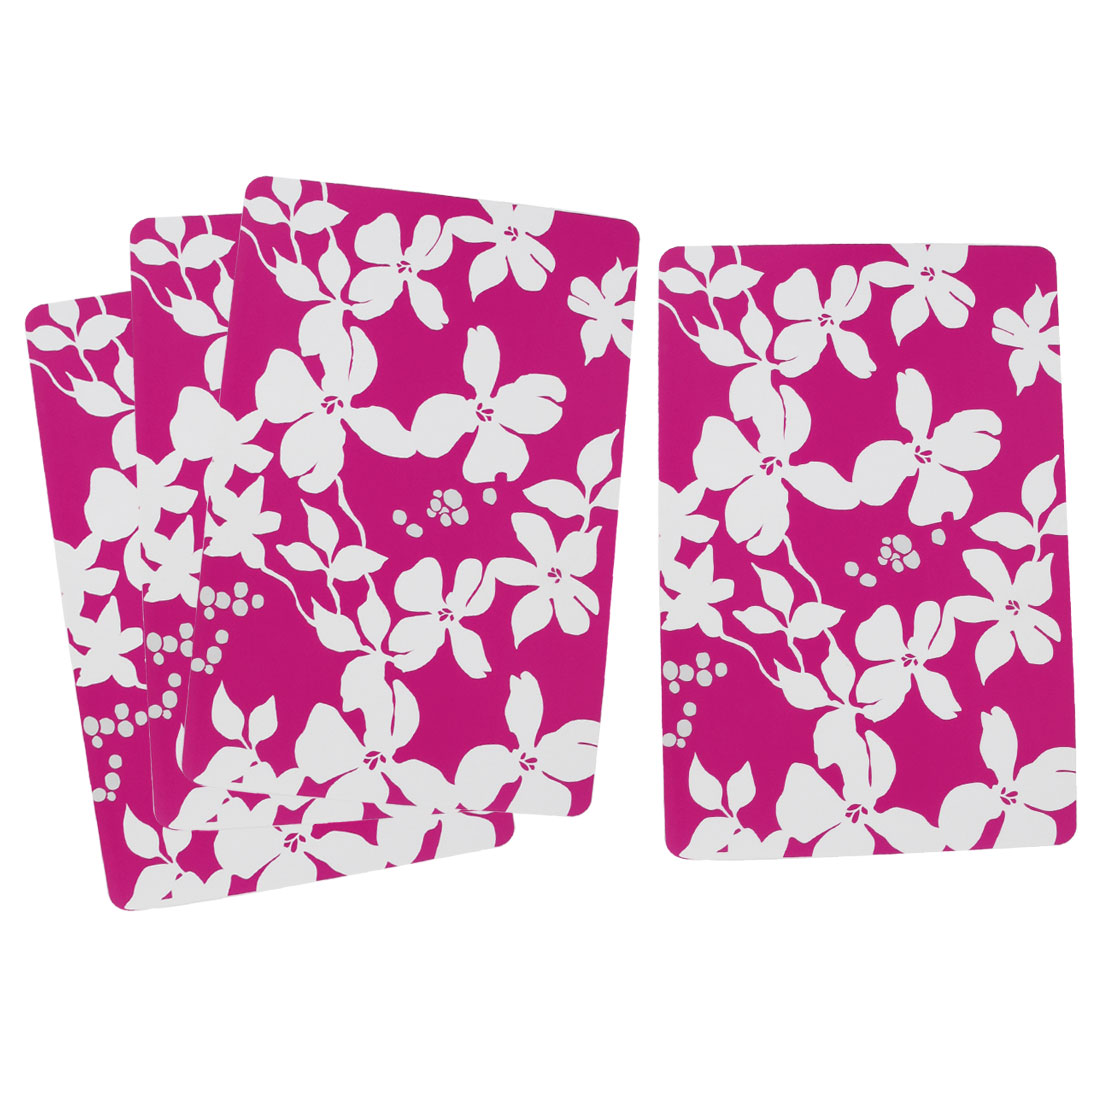 4 Pcs White Flowers Print Plastic Rectangle Table Pot Mug Holder Mat Fuchsia